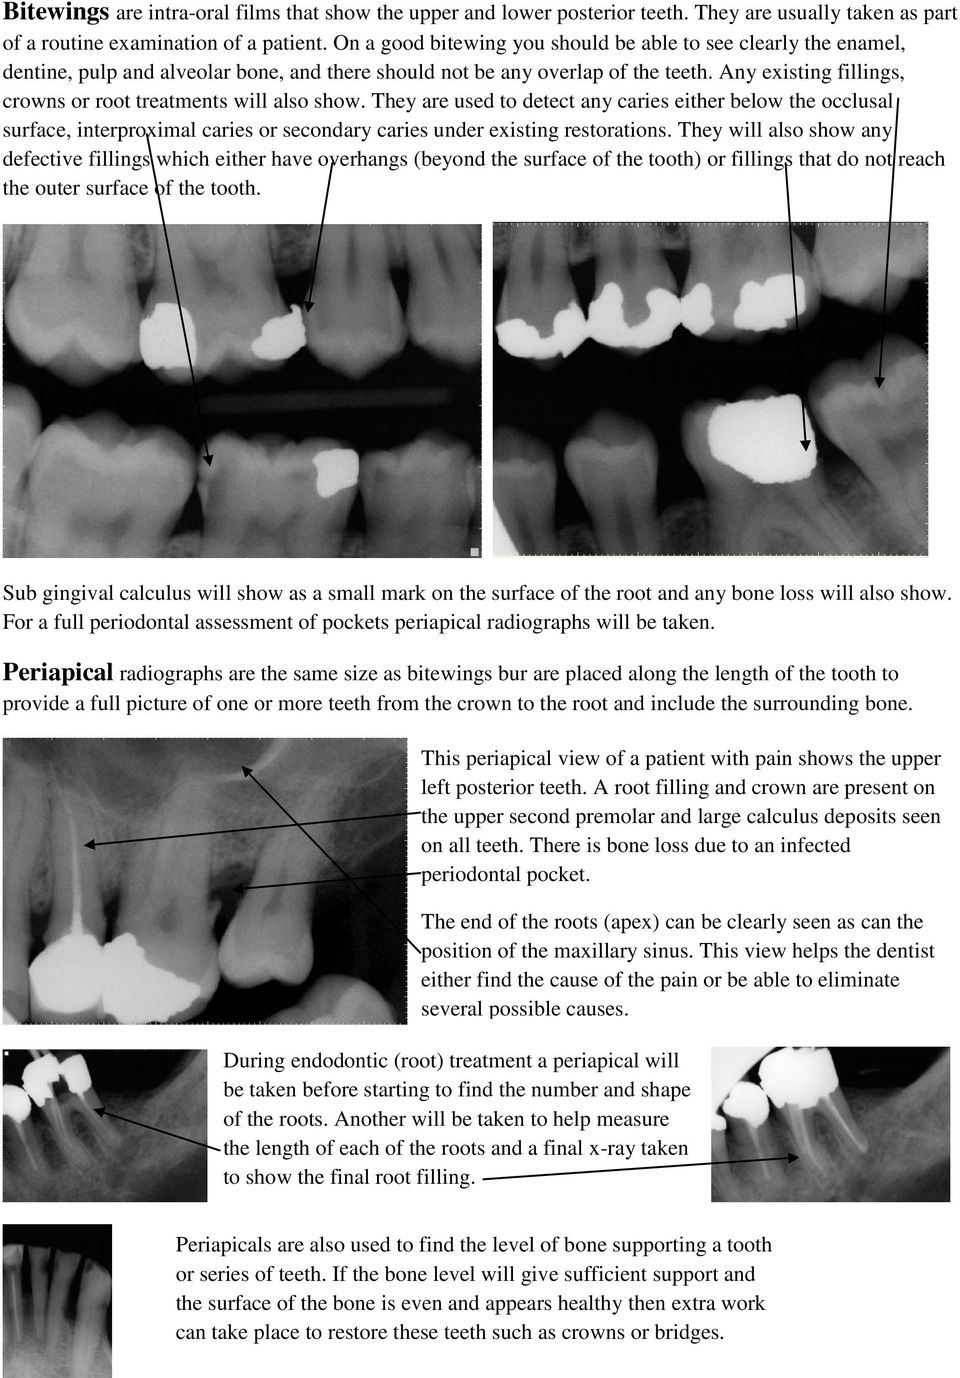 Any existing fillings, crowns or root treatments will also show.